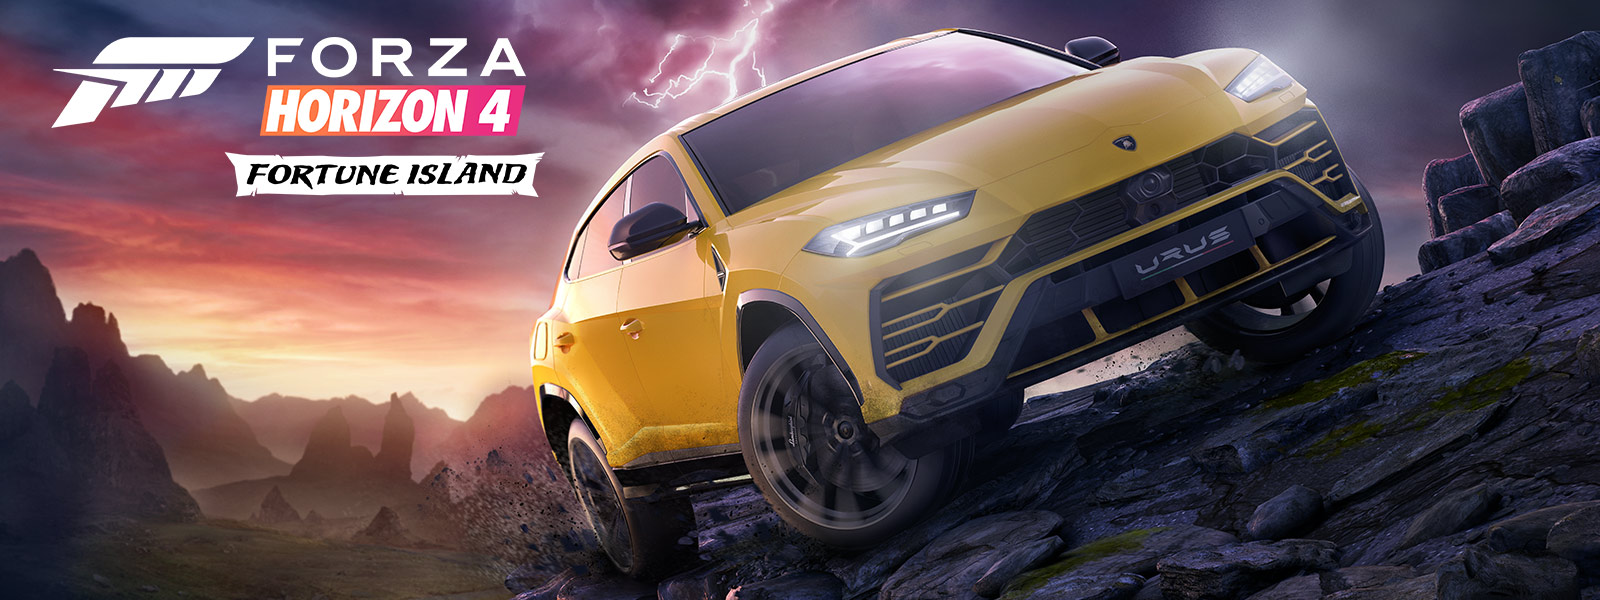 Forza Horizon 4 Fortune Island, a Yellow Lamborghini Urus drives on treacherous terrain with lightning in the background